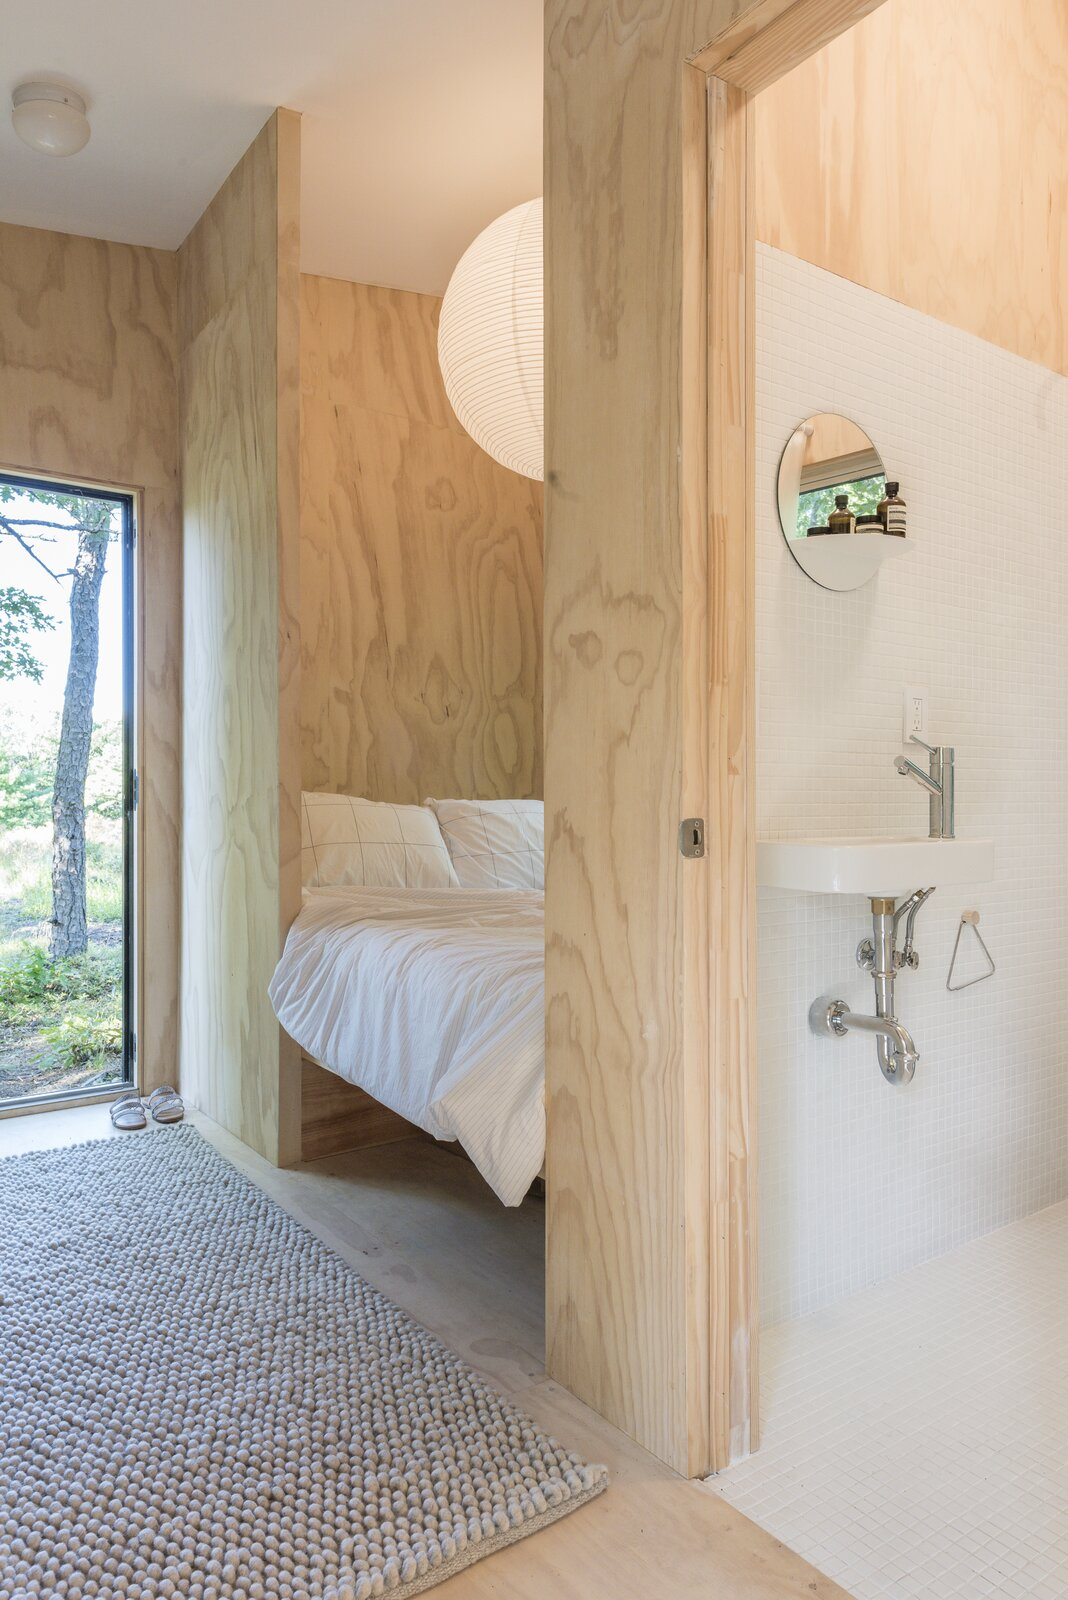 Bath Room, Ceiling Lighting, One Piece Toilet, Wall Mount Sink, Ceramic Tile Wall, and Ceramic Tile Floor A small yet full-sized bath houses a tub, compost toilet and sink.  Photo 6 of 10 in The Cofounders of Den, a DIY Cabin Startup, Share a Peek Into Their Catskills Retreat